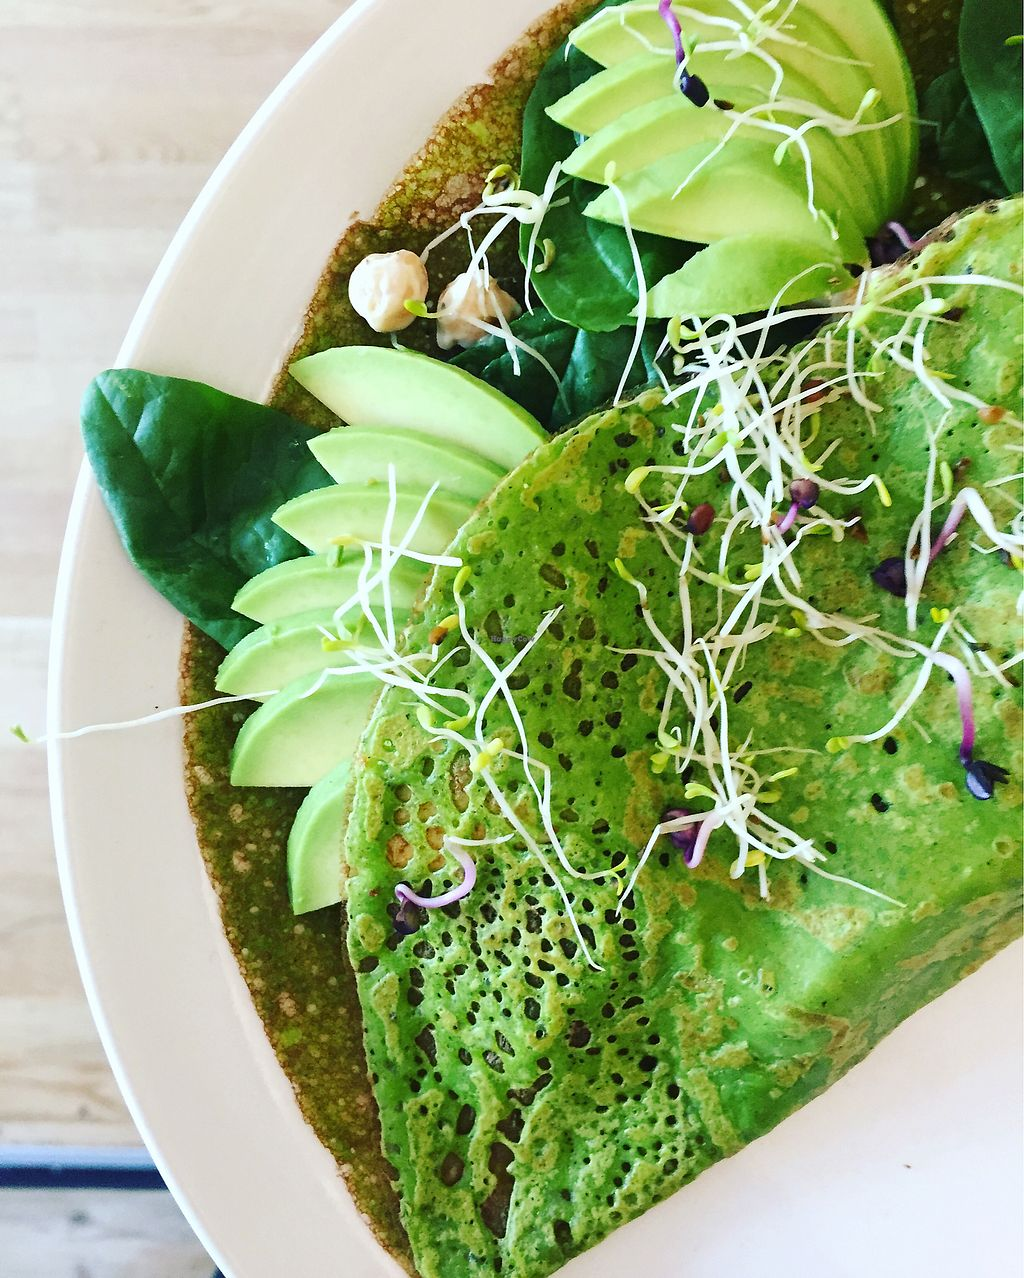 """Photo of Crepes a la carte  by <a href=""""/members/profile/EvaLeBadezet"""">EvaLeBadezet</a> <br/>green buckwheat galette <br/> August 21, 2017  - <a href='/contact/abuse/image/91777/295122'>Report</a>"""